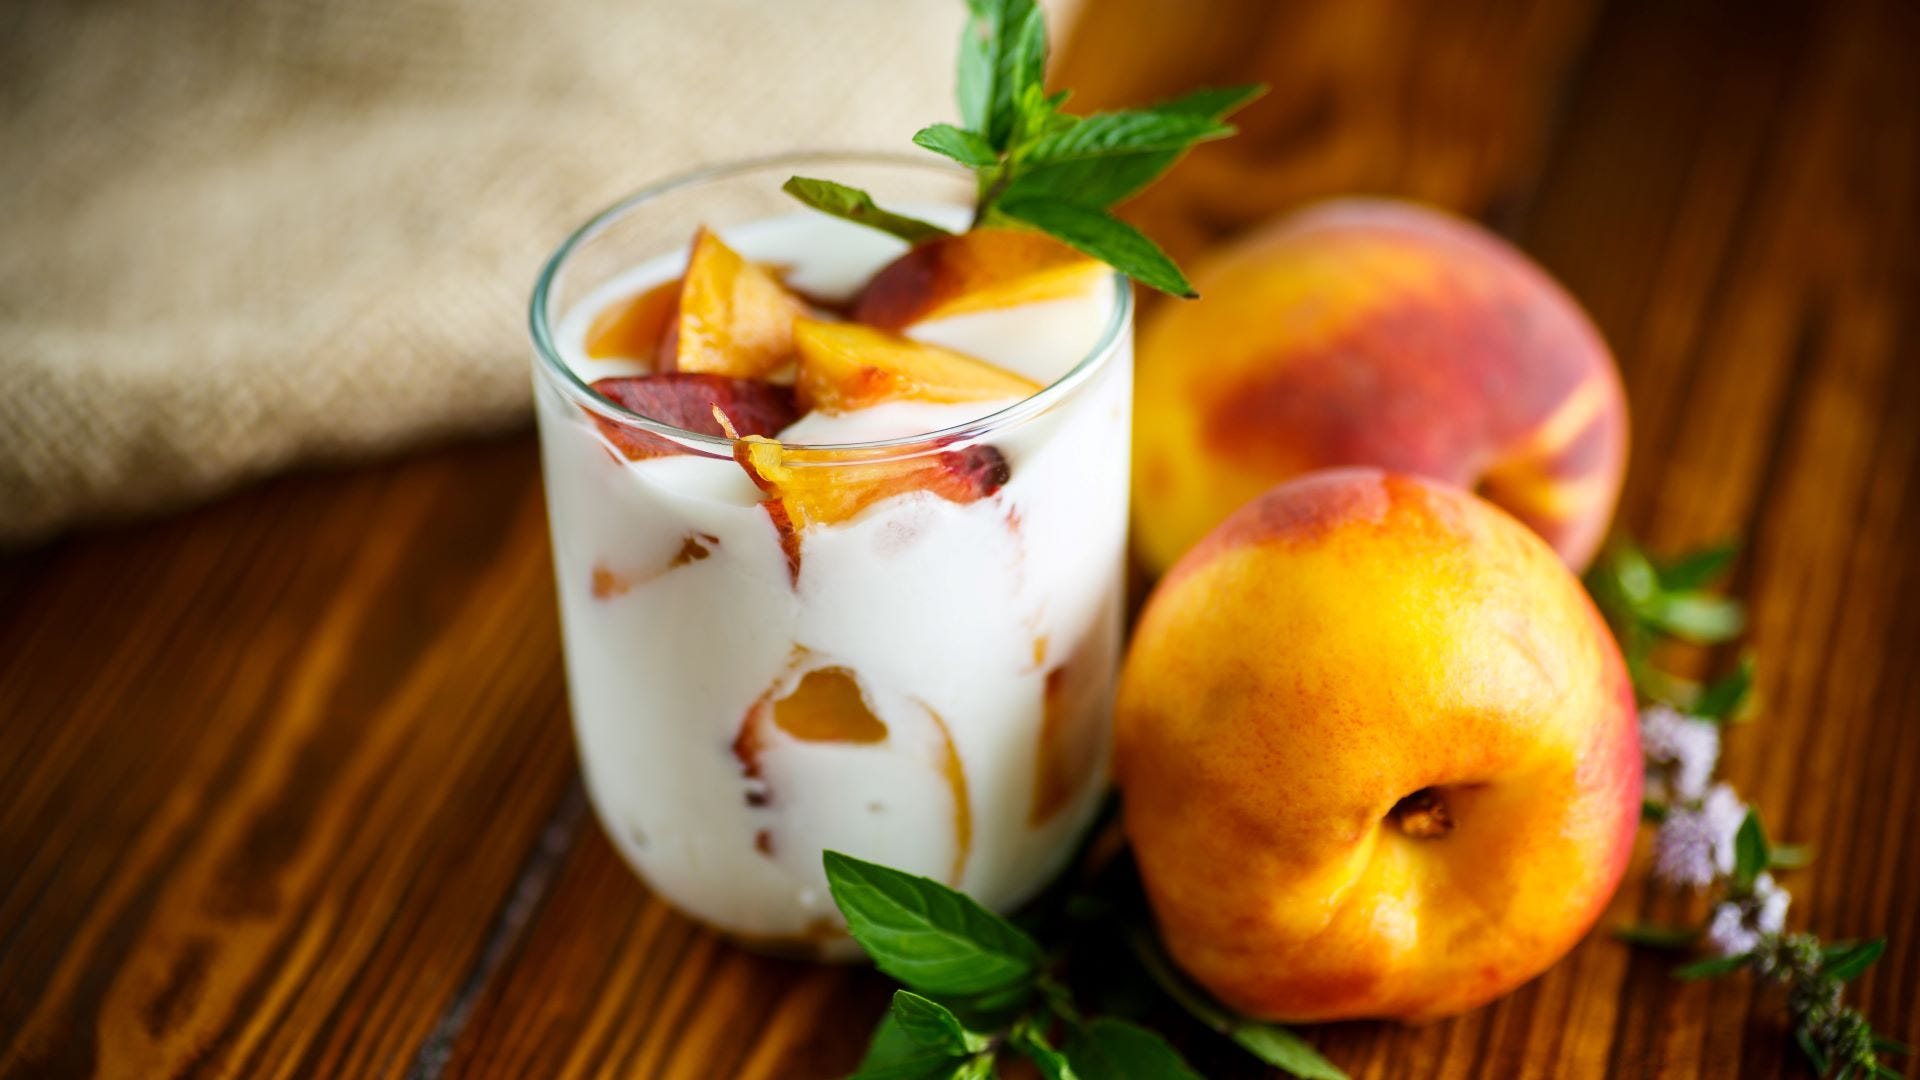 Yogurt and sliced peaches in a glass cup with two peaches next to it.